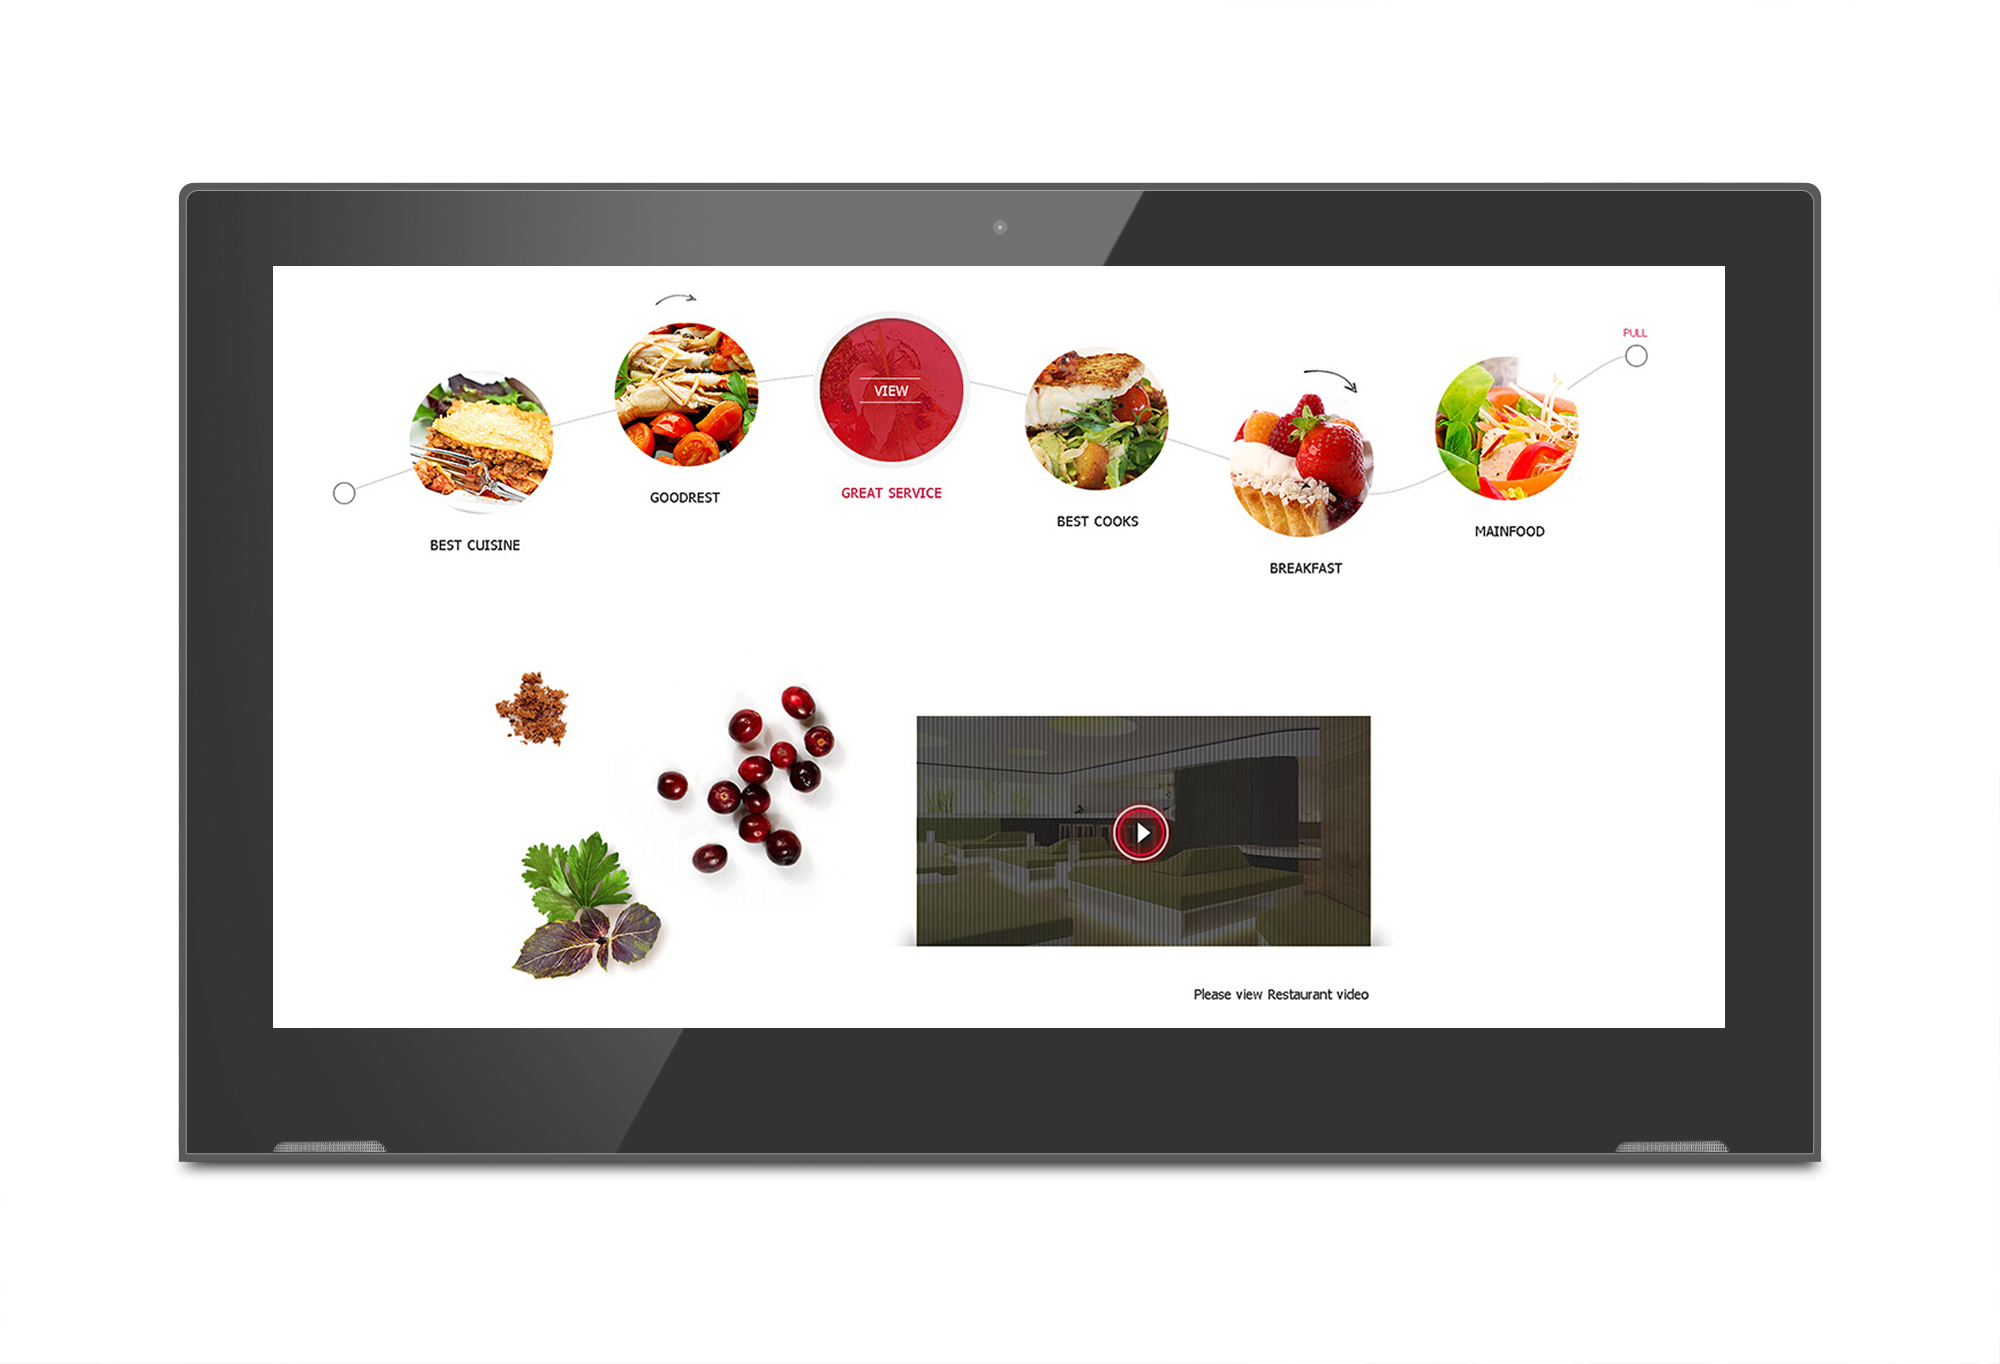 L style 15.6 inch IPS screen RJ45 wifi NFC Android 6.0 system 1080p android l-type tablet pc